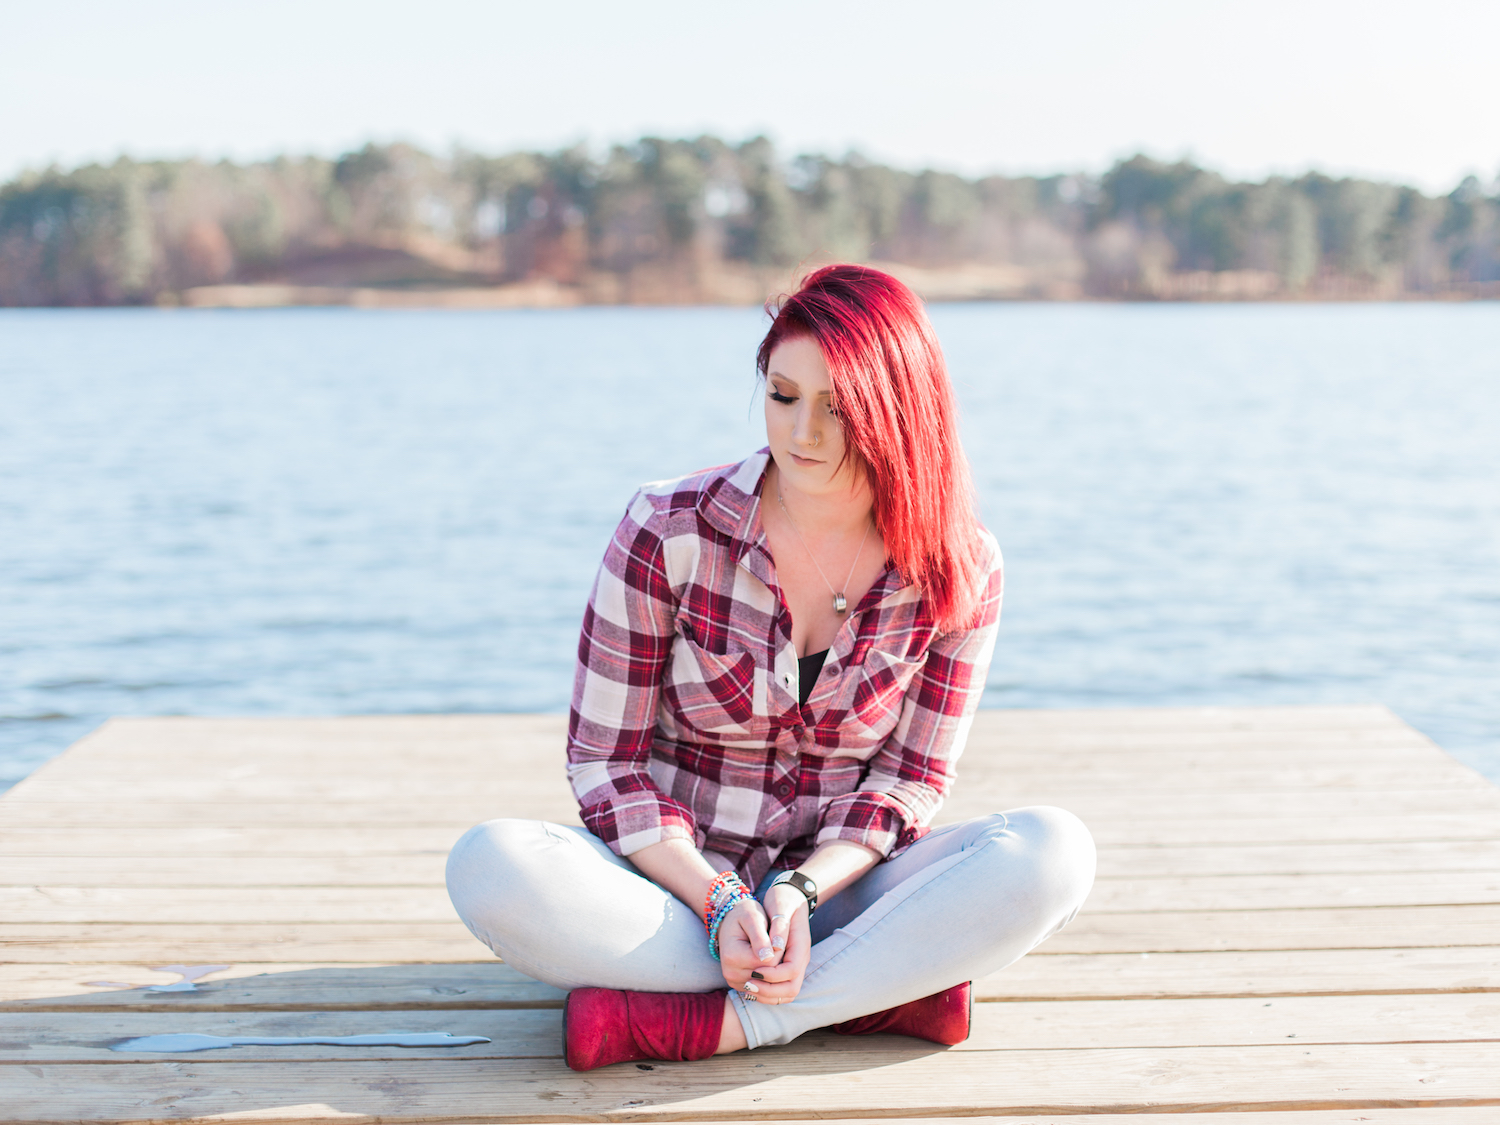 High school senior session at a lake at Acworth Beach at Cauble Park in Acworth, Georgia. Featuring edgy, flannel senior style and bright red layered hair! Photo by Kesia Marie Photography.